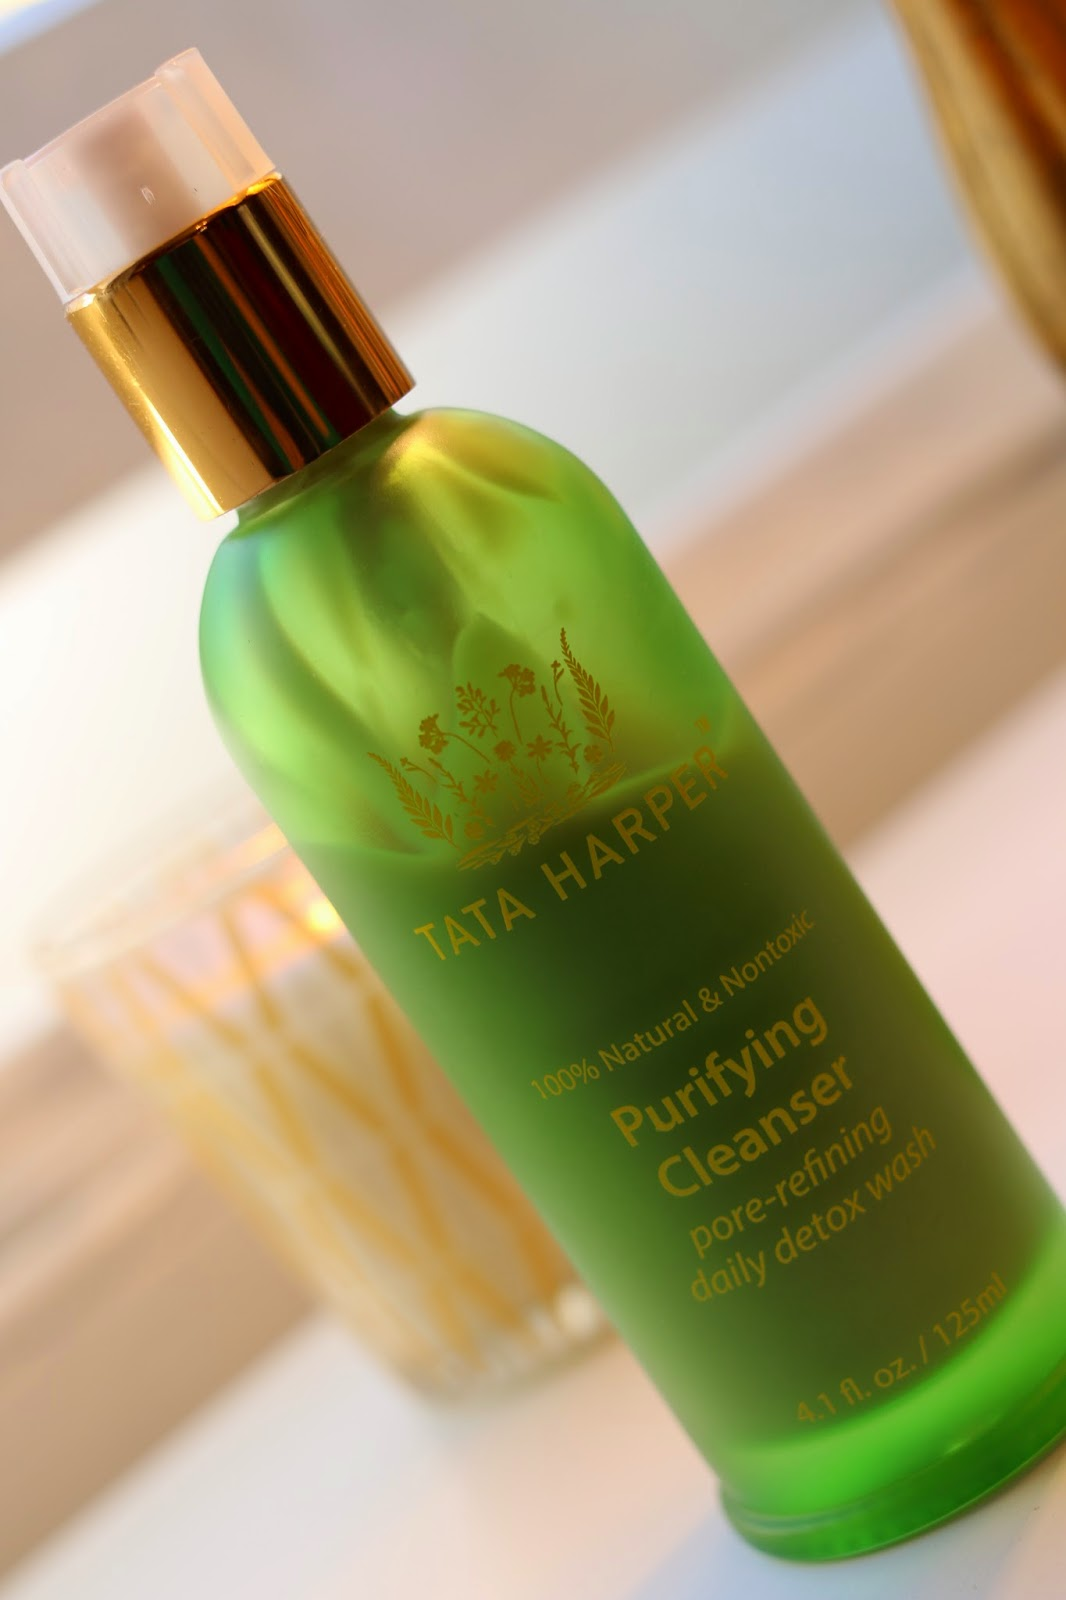 Purifying Cleanser by tata harper #16